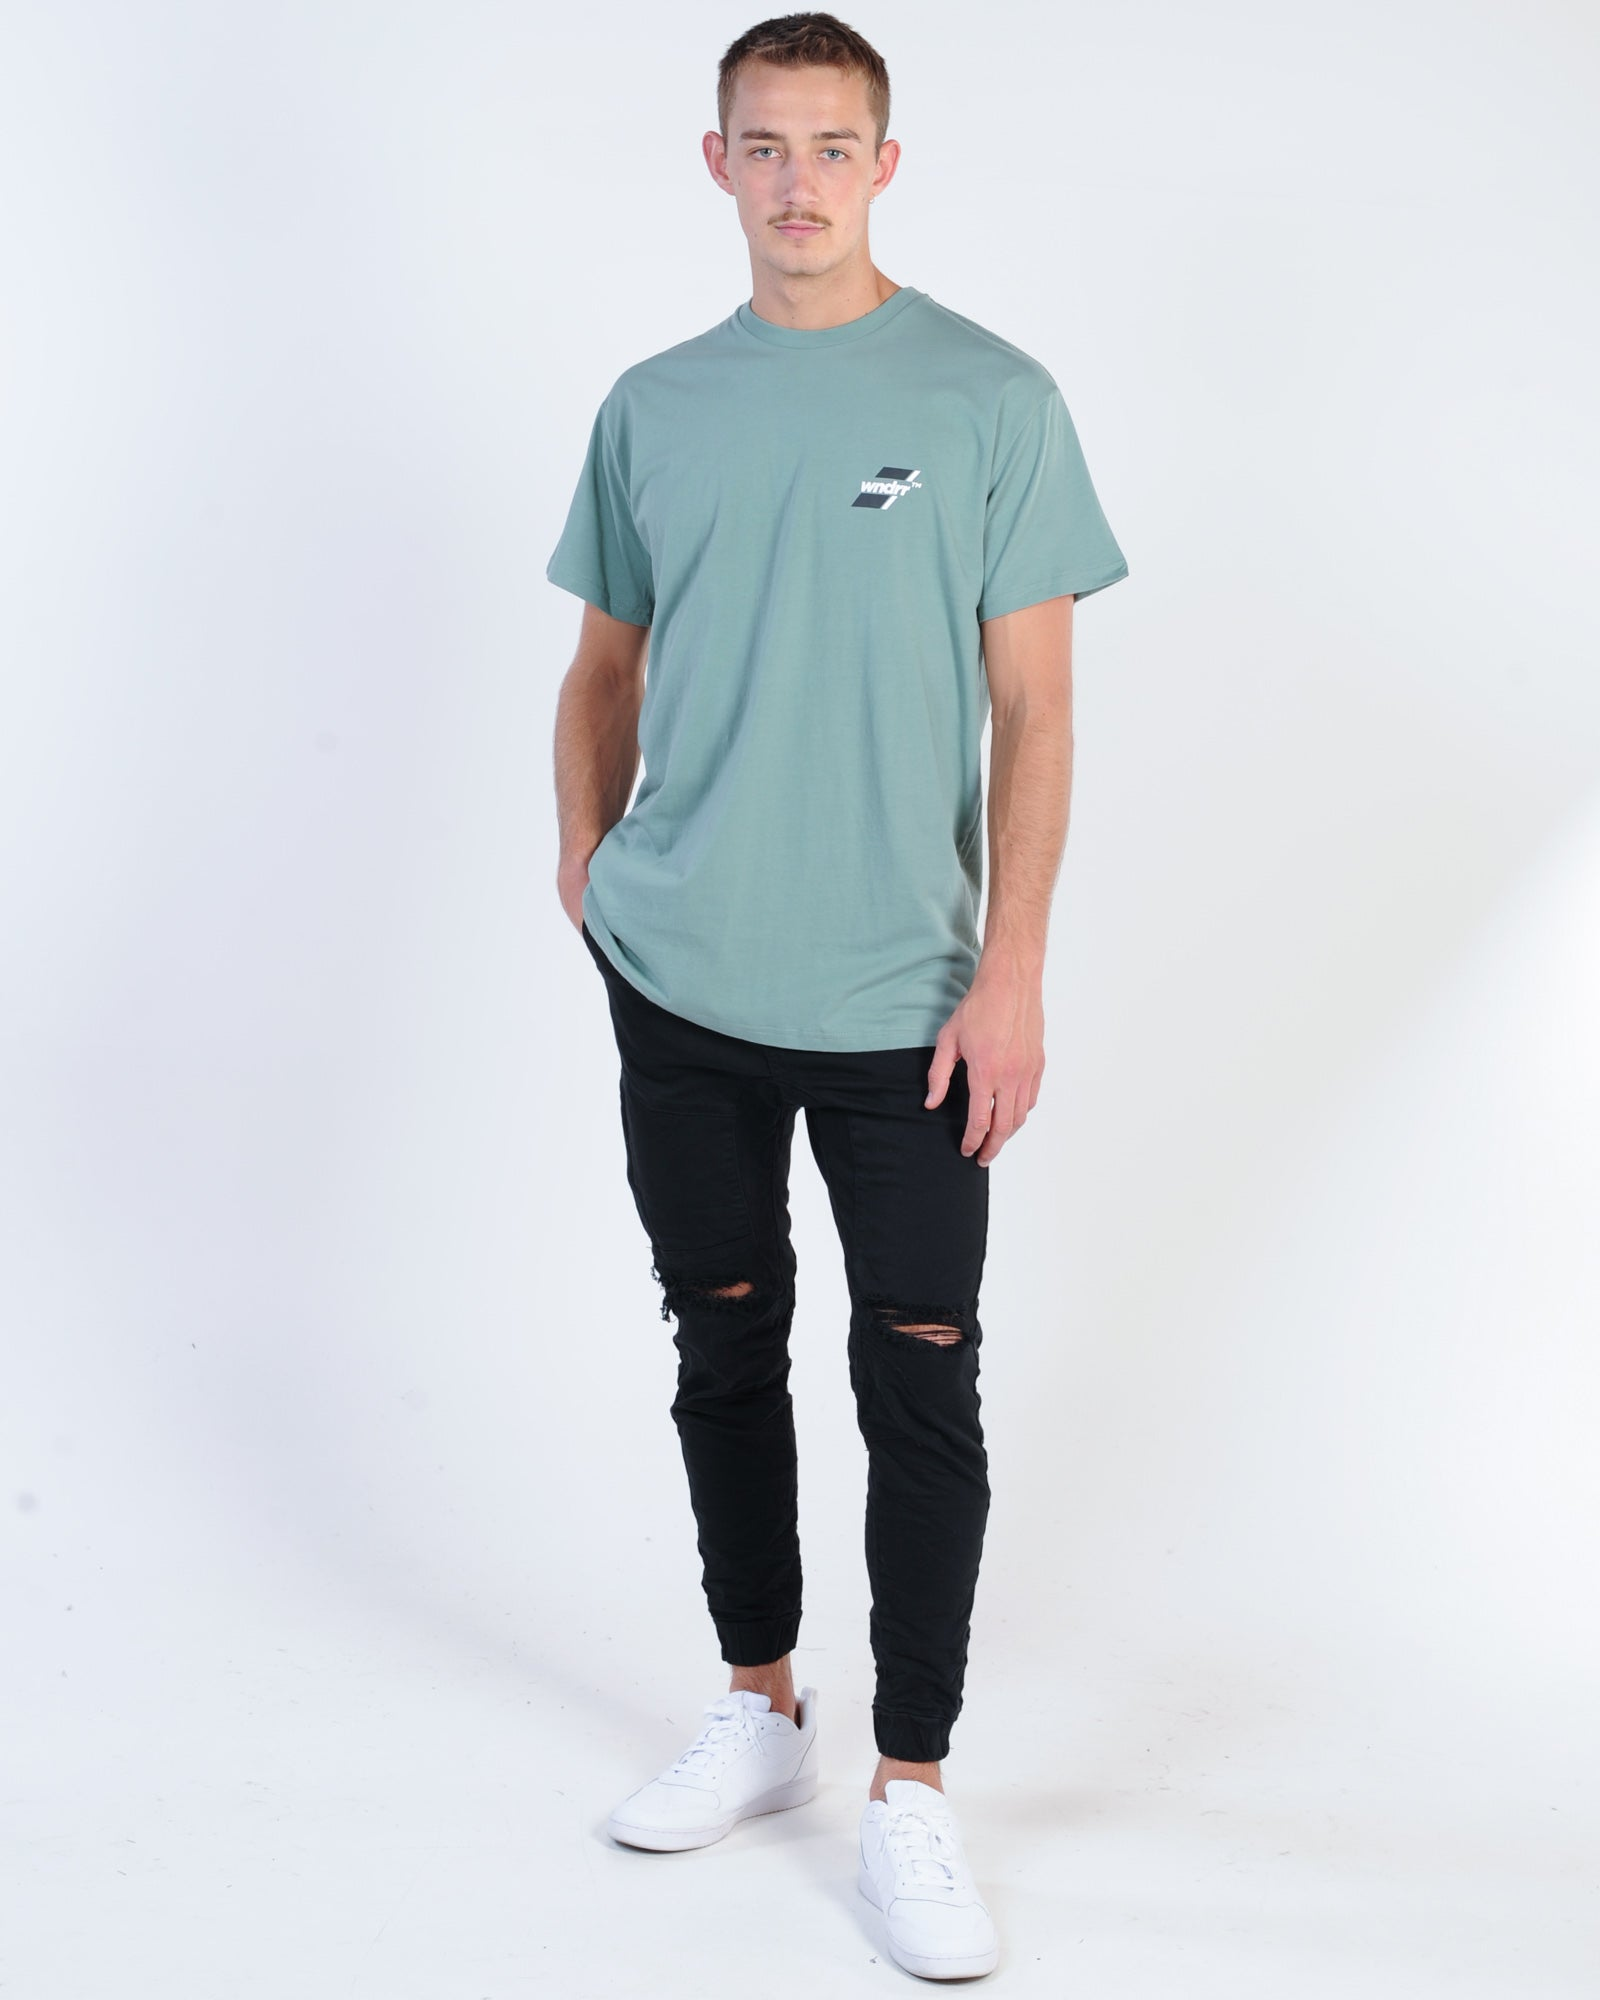 Cigarette Tee - White